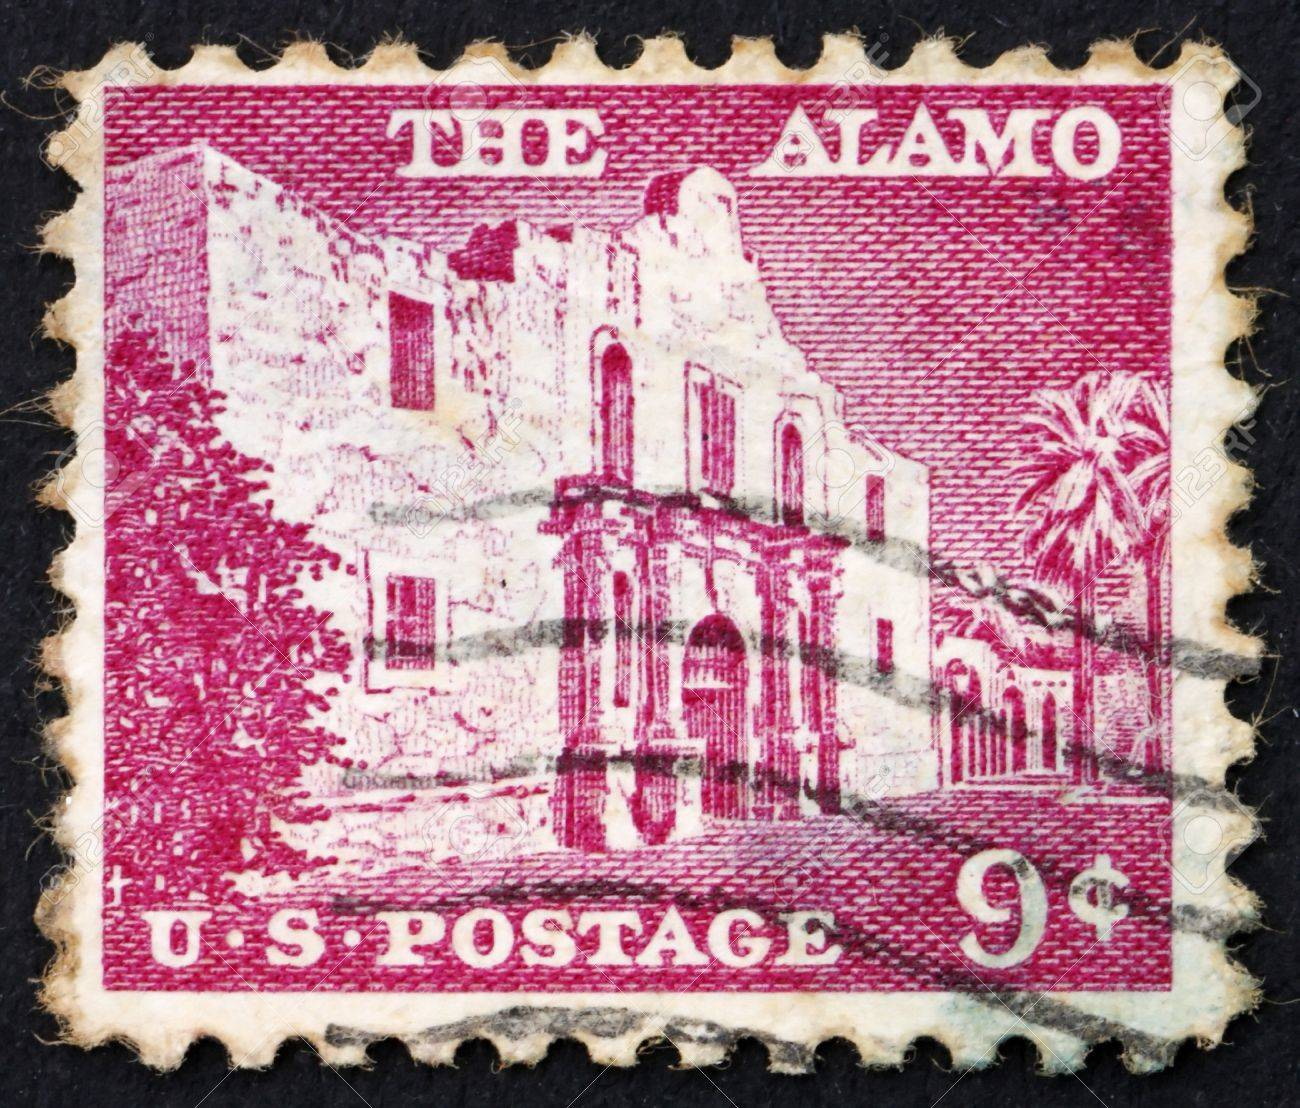 UNITED STATES OF AMERICA - CIRCA 1954: a stamp printed in the United States of America shows The Alamo mission, the place of pivotal event in the Texas Revolution 1836, circa 1954 Stock Photo - 11731836